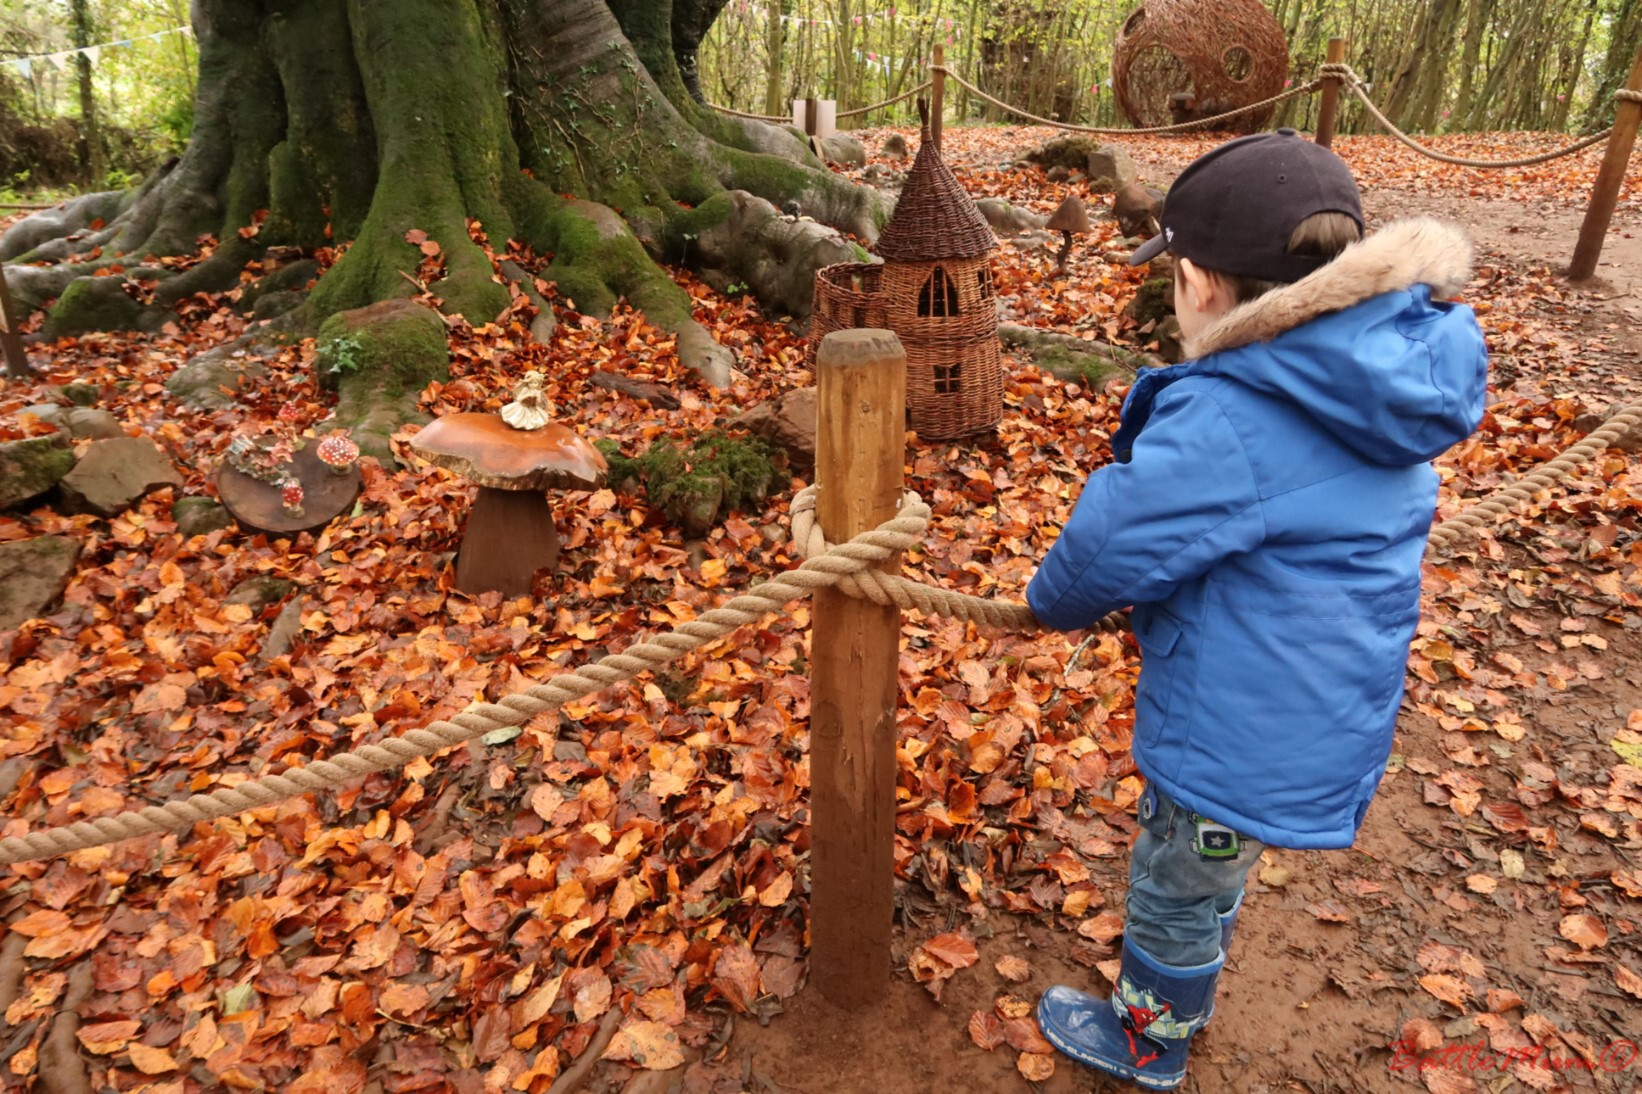 hunting a gruffalo at the mountain view ranch